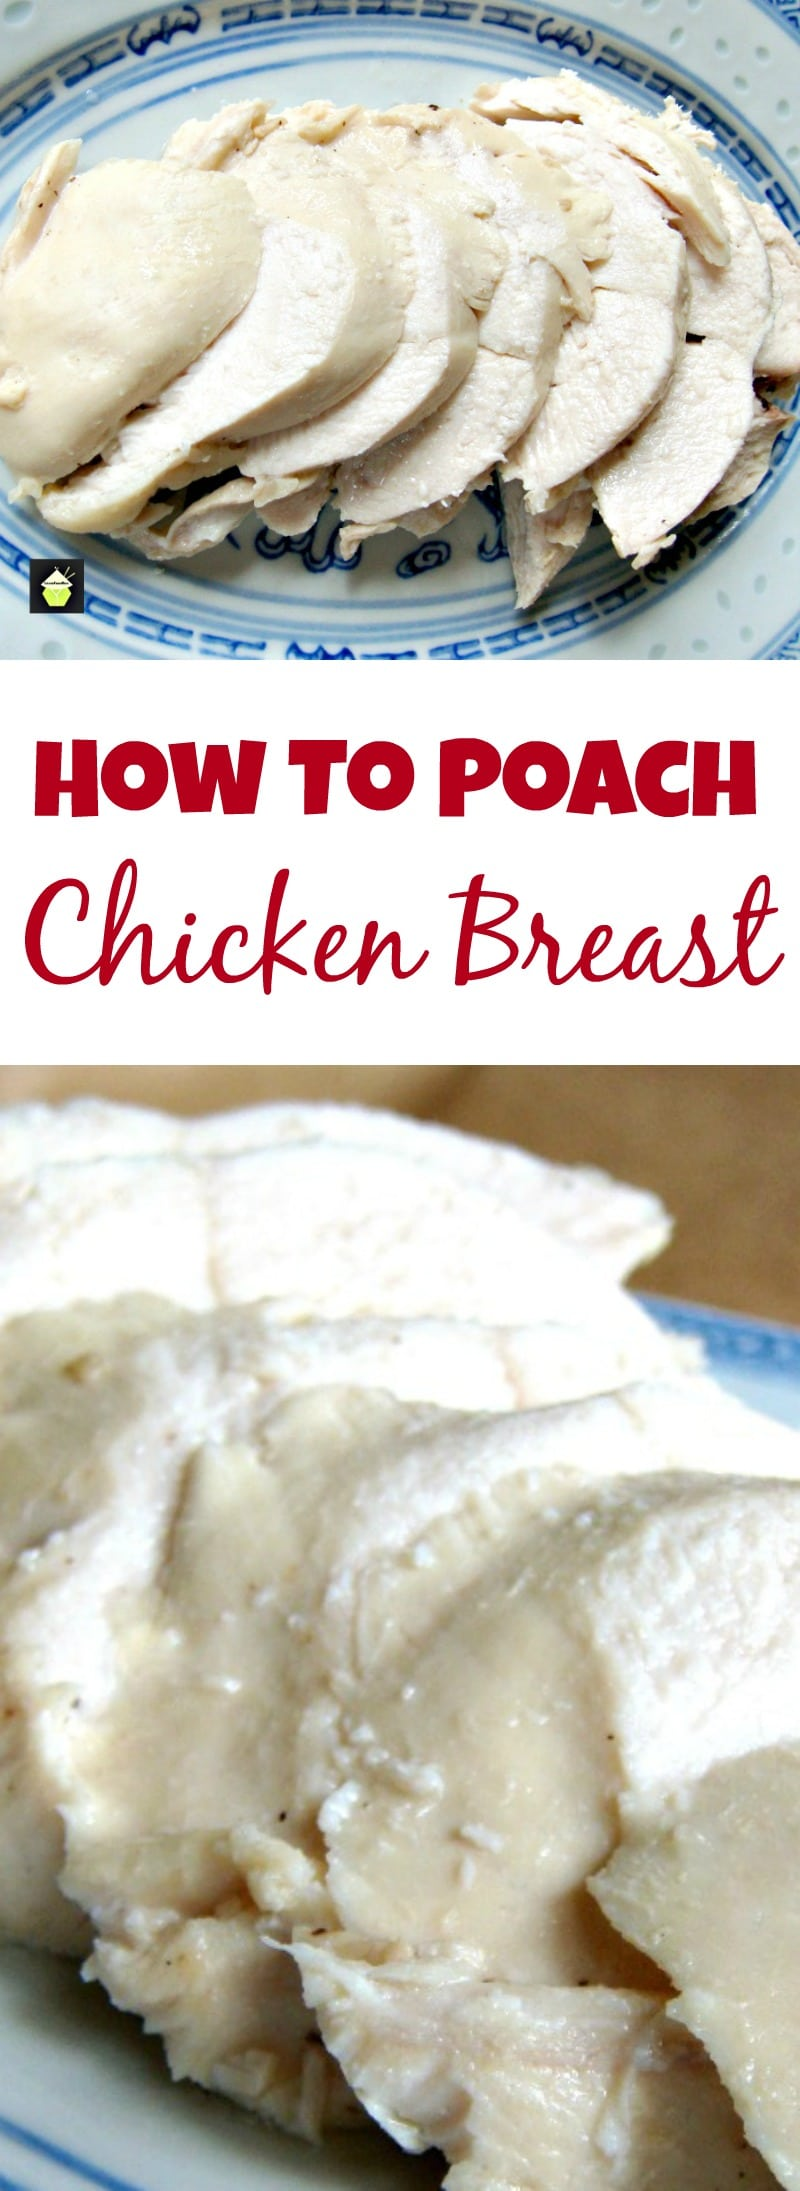 How to Poach Chicken with easy recipe, and the trick to keeping the meat juicy and never dry! Great for using in salads, sandwiches, lunch boxes etc and also a very healthy way to enjoy chicken!